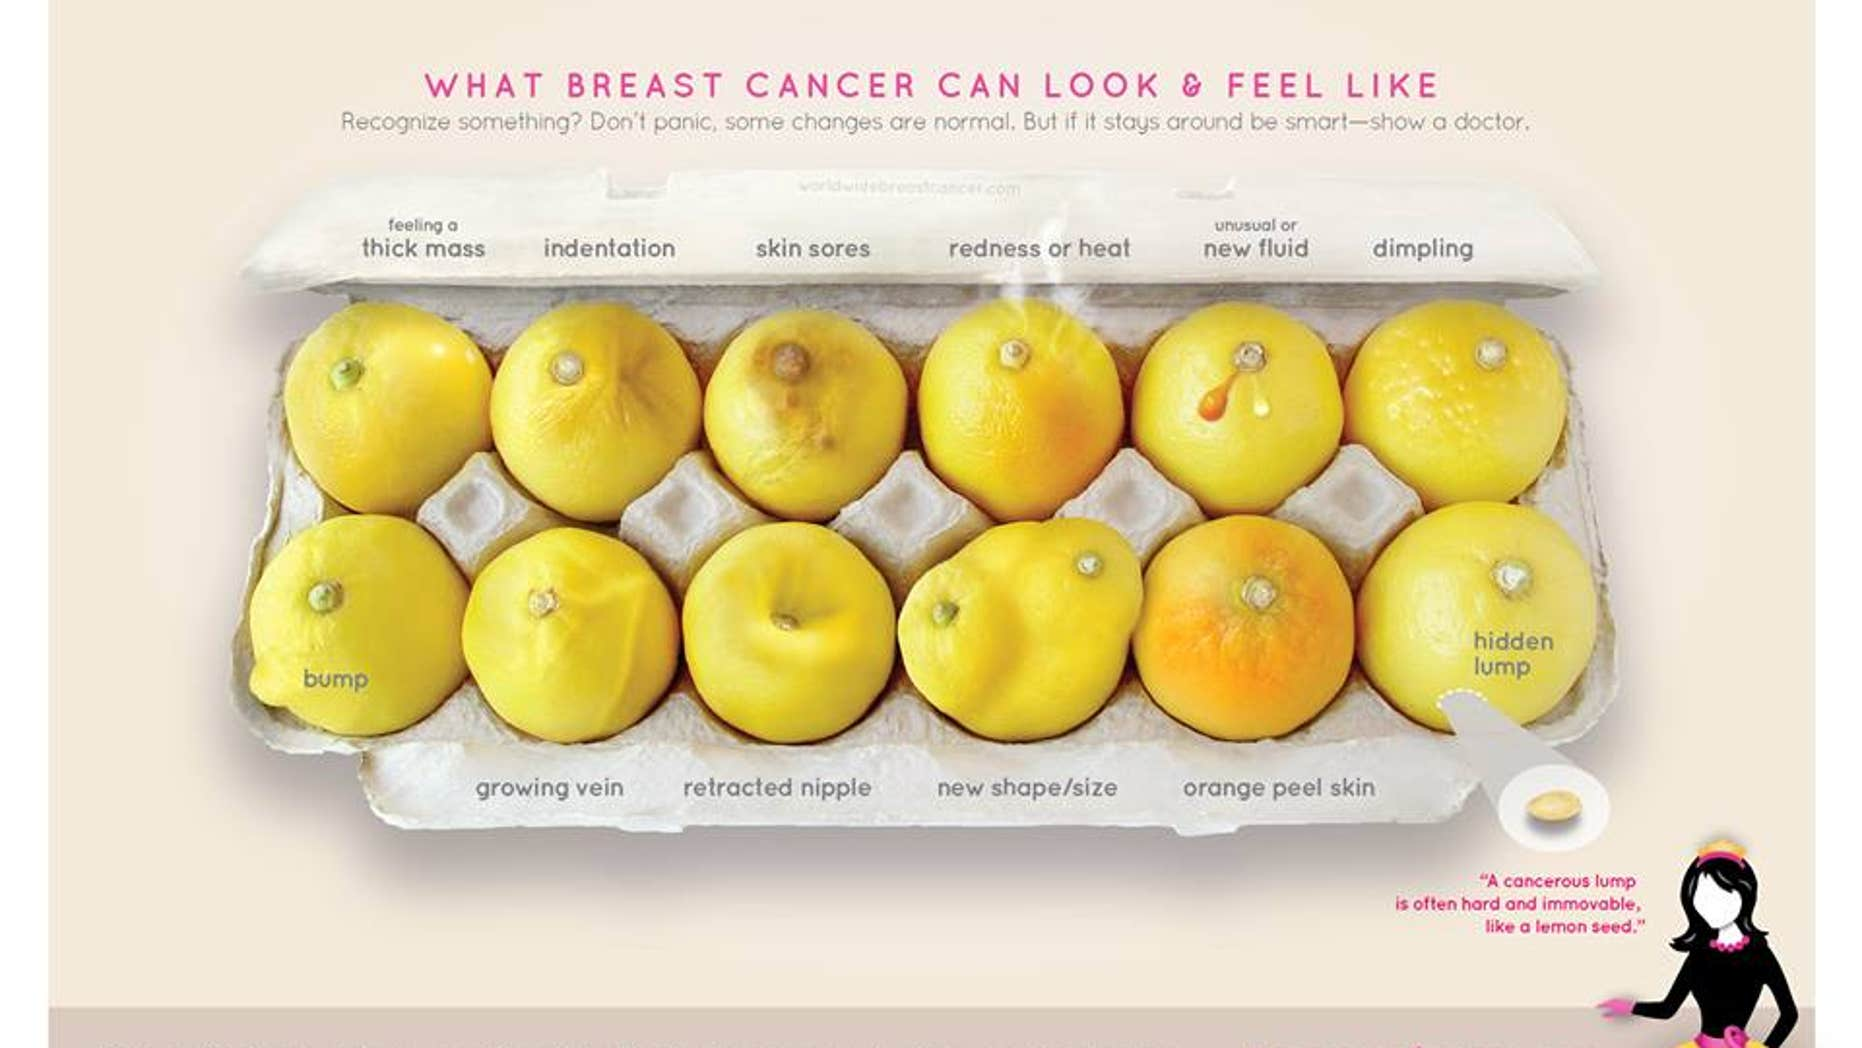 12 key signs of breast cancer, as seen in viral image of